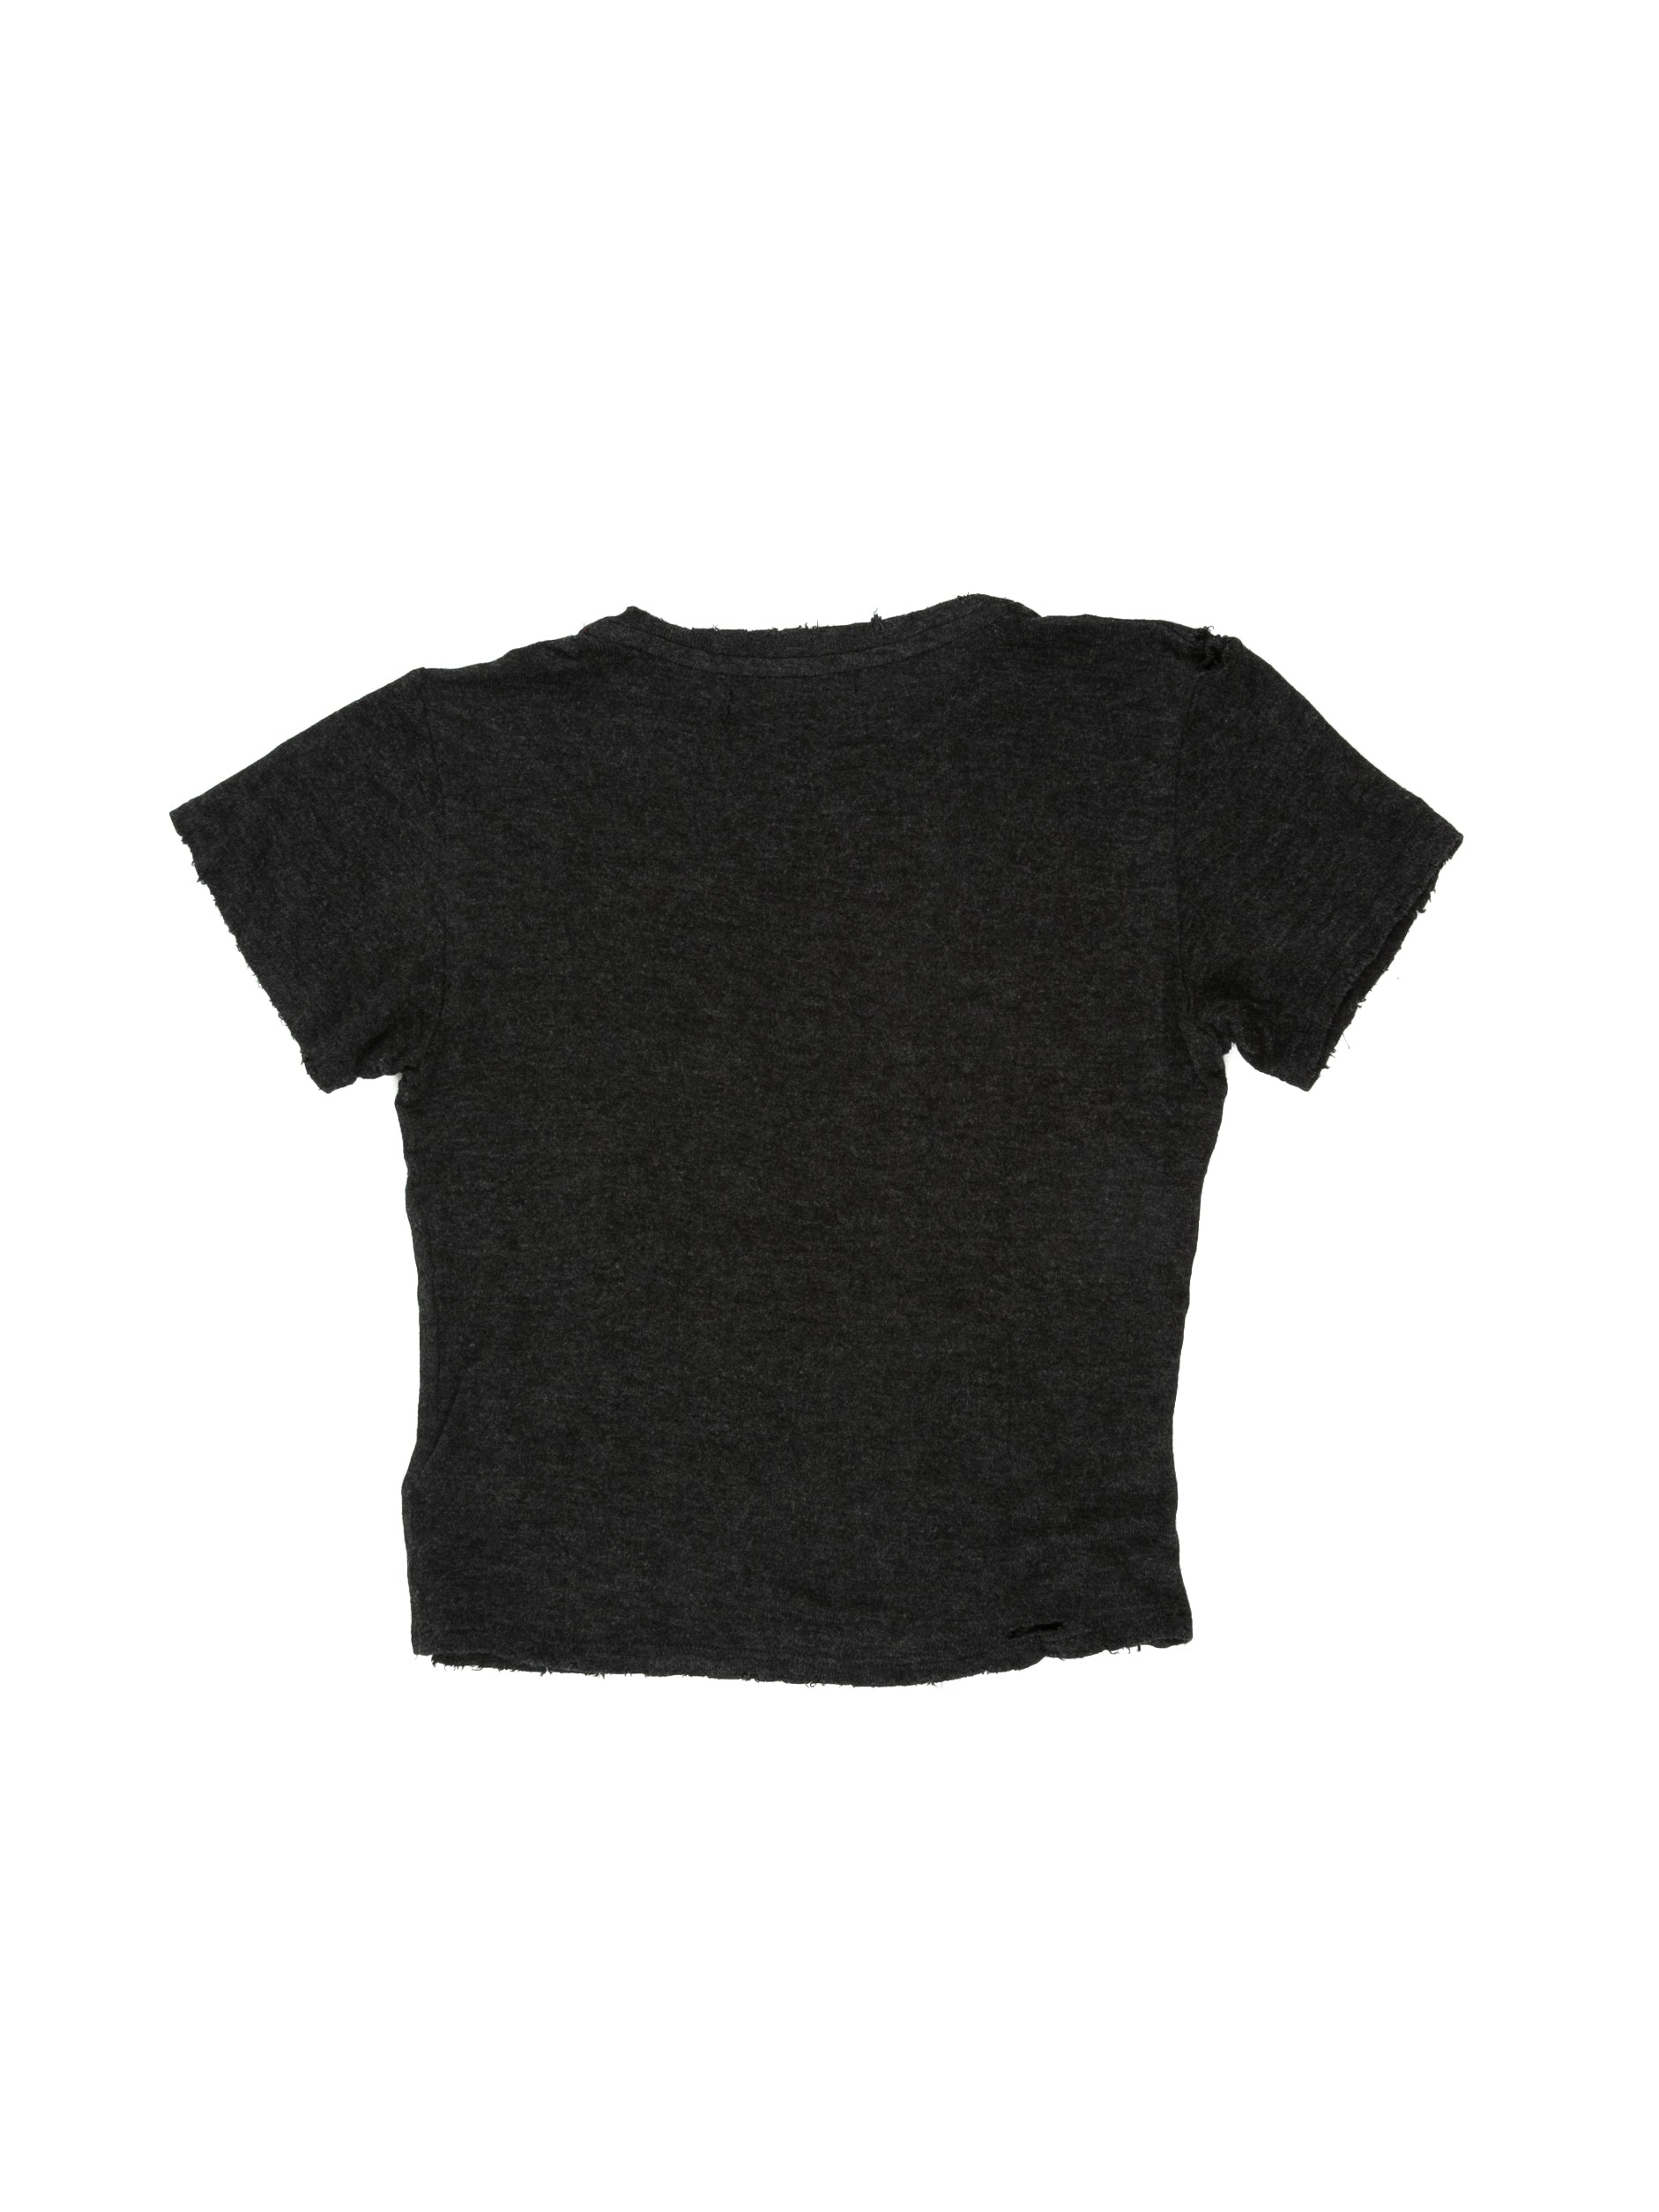 Back of Boxy Tee in Charcoal